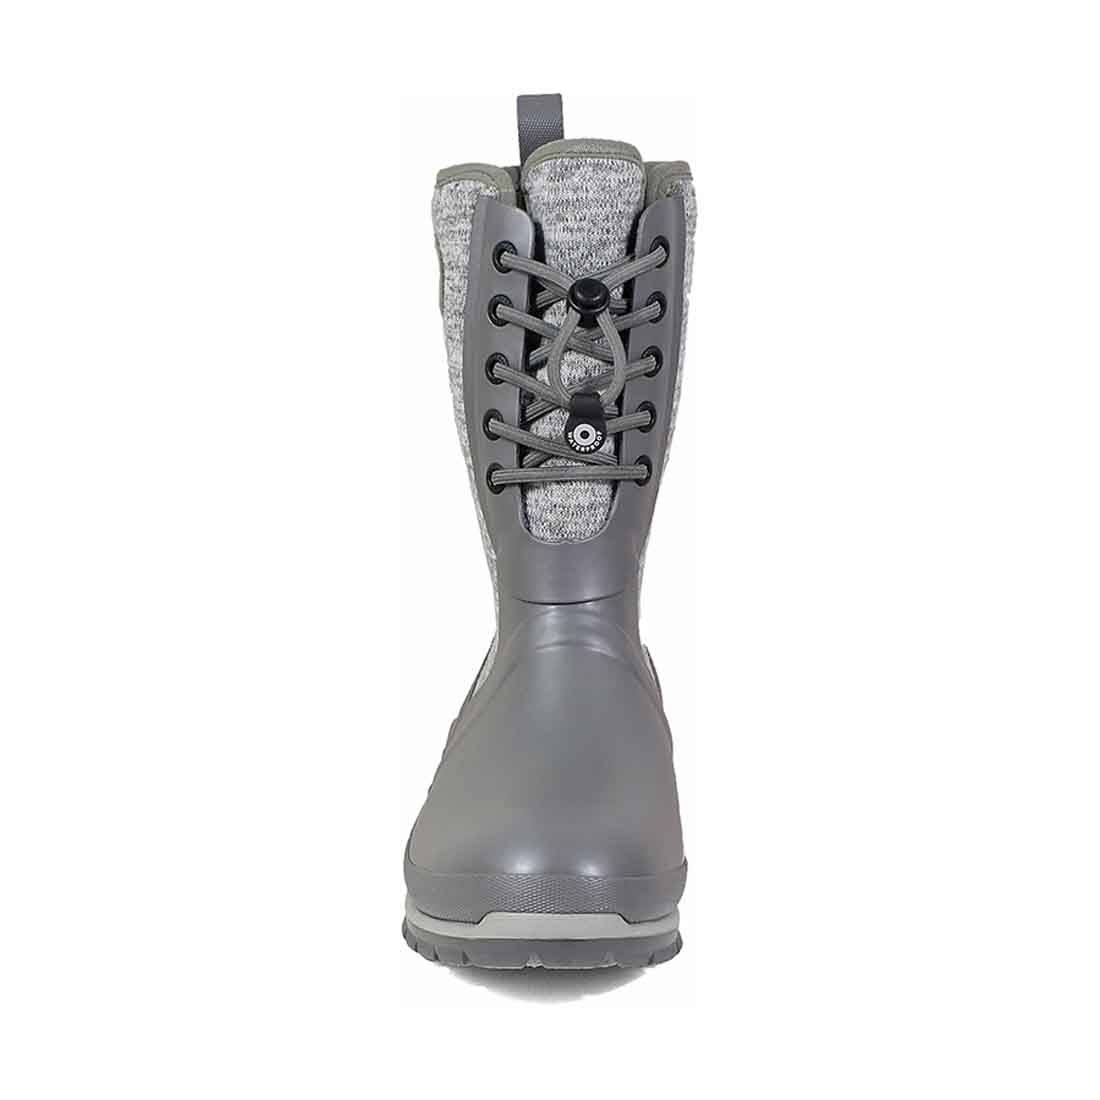 BOGS Crandall Lace-Up Knit Boot - Gray_3.jpg